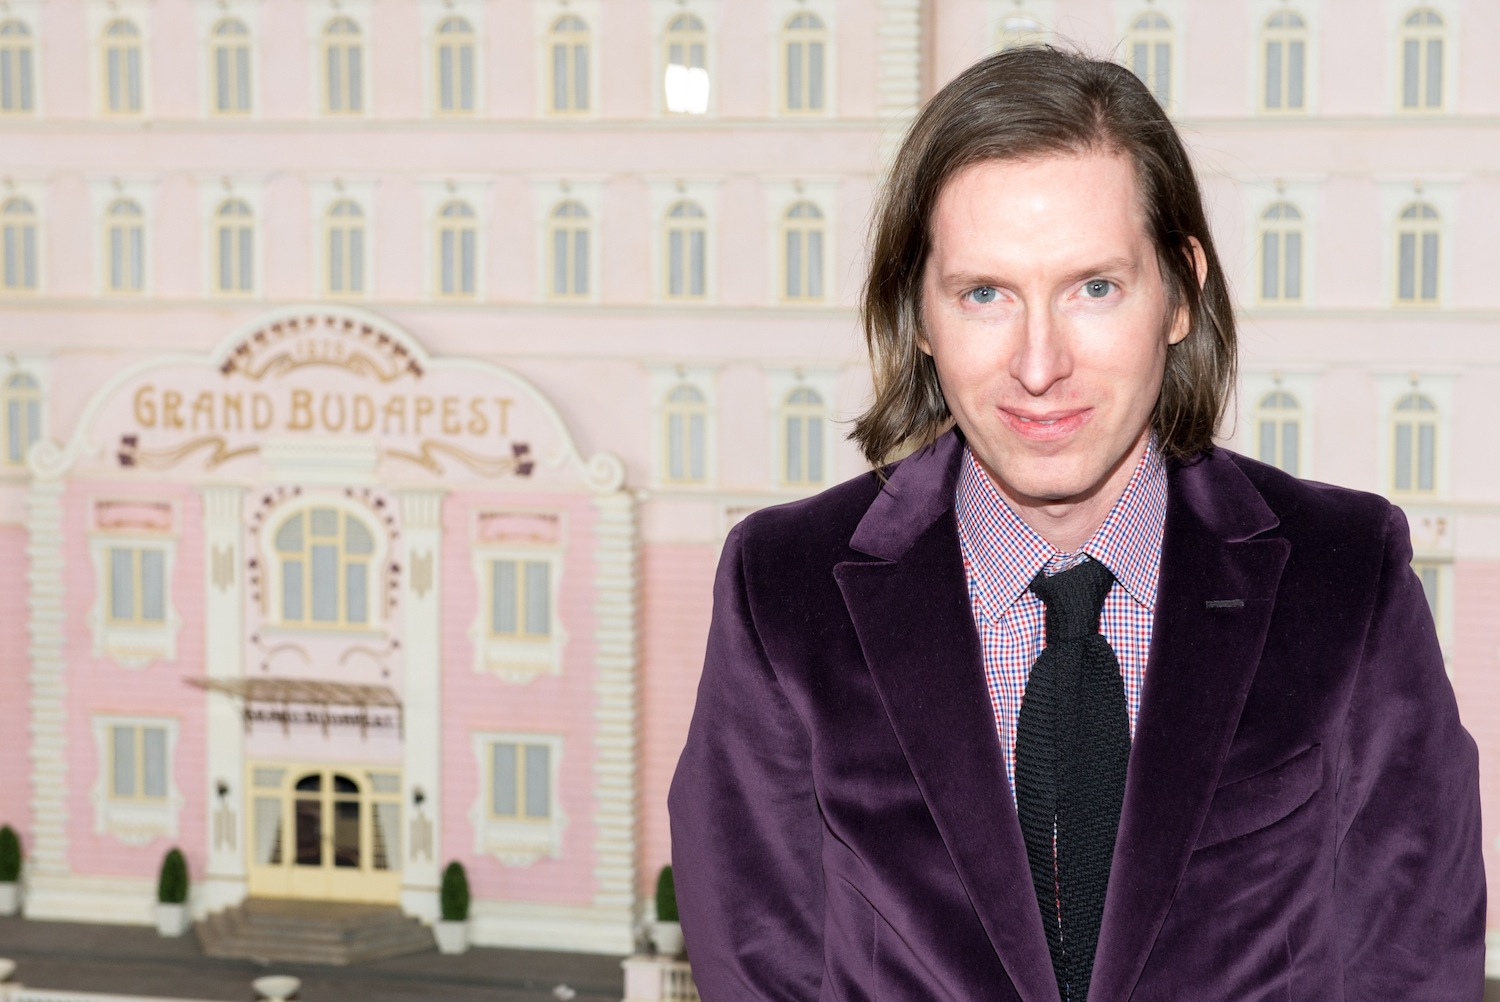 Wes Anderson attends  The Grand Budapest Hotel  premiere at Alice Tully Hall on Feb. 26, 2014 in New York City.